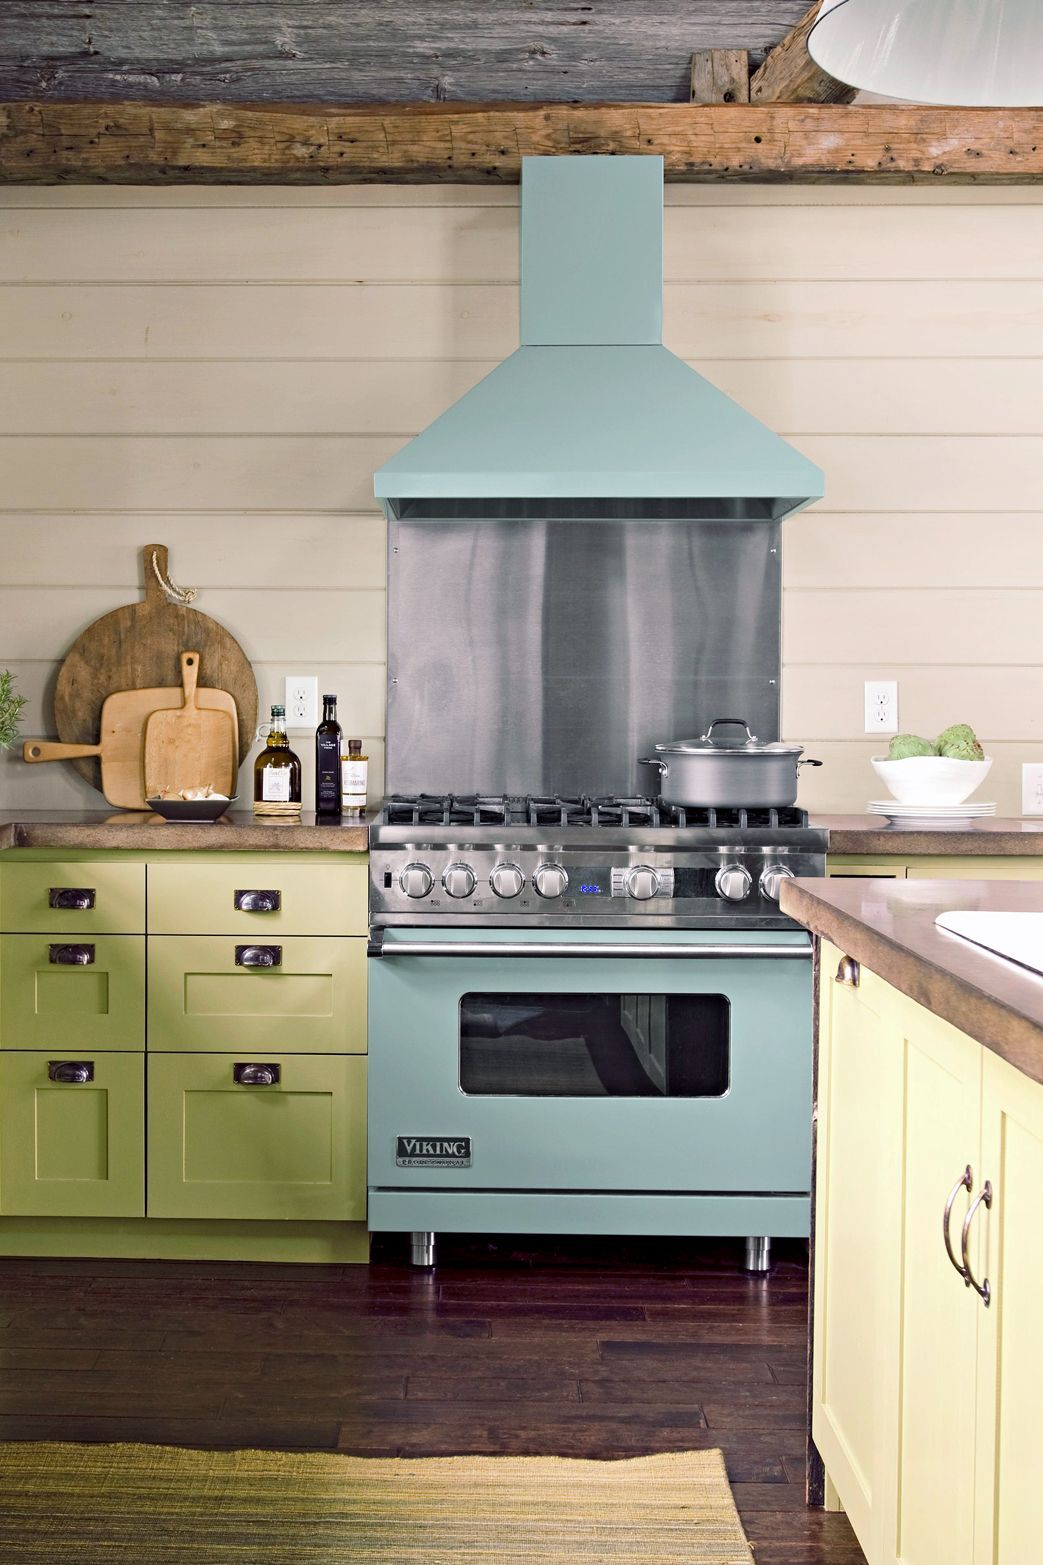 19 Popular Kitchen Cabinet Colors With Long Lasting Appeal In 2020 Cottage Kitchen Cabinets Kitchen Cabinets Cottage Kitchen Design